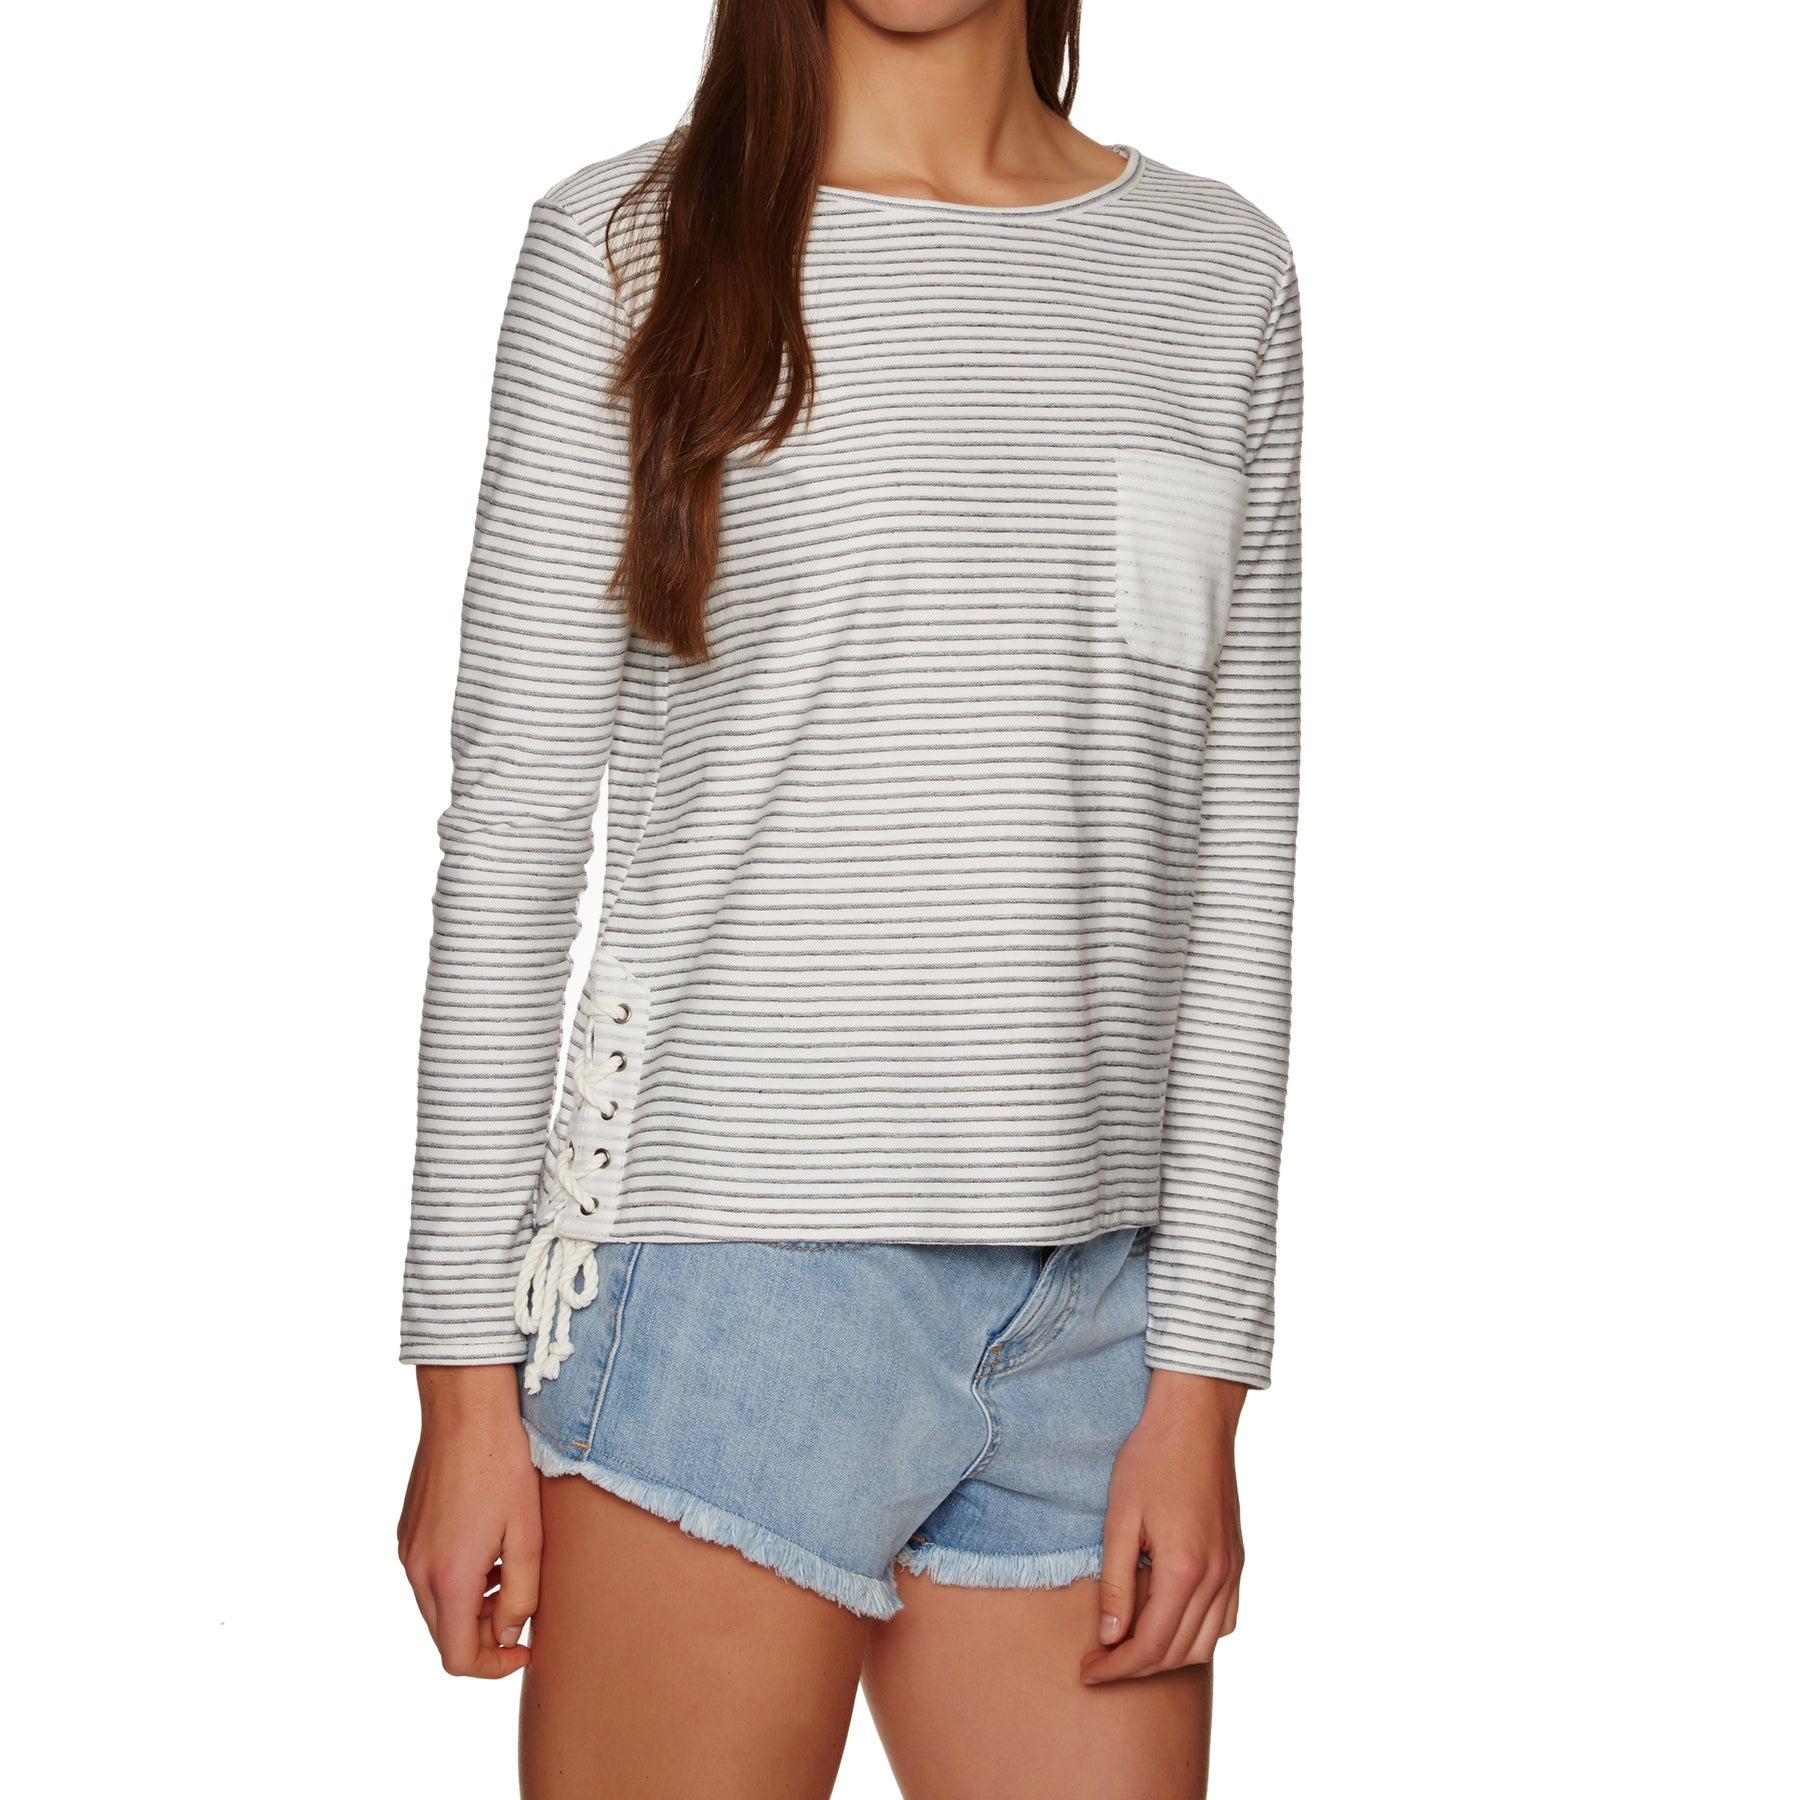 Roxy Slice Of Heaven Womens Top - Marshmallow